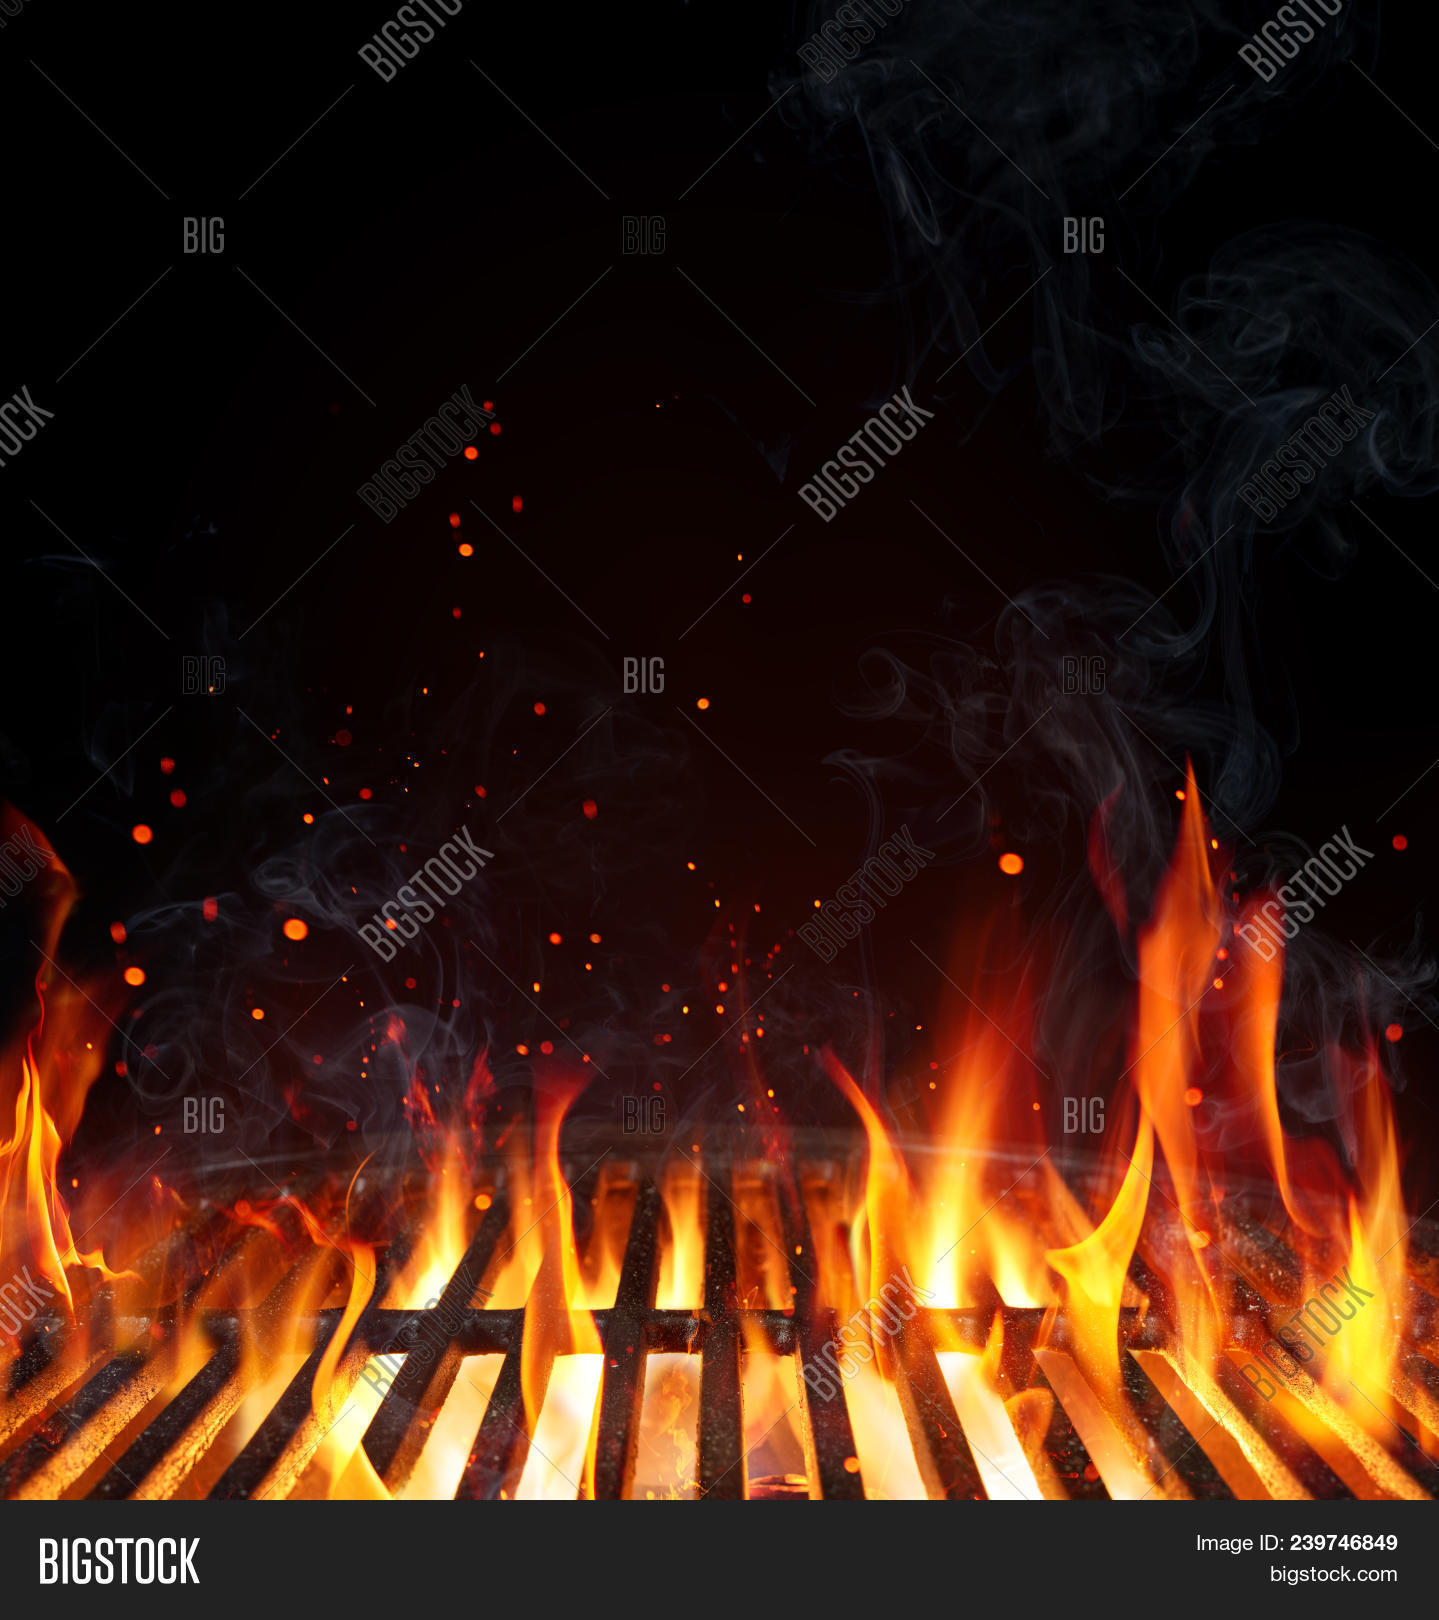 background,barbecue,barbeque,bbq,black,blank,braai,broil,burn,charcoal,clean,cookout,empty,fire,flame,flaming,food,grate,grid,grill,grilling,heat,hot,isolated,party,picnic,restaurant,summer